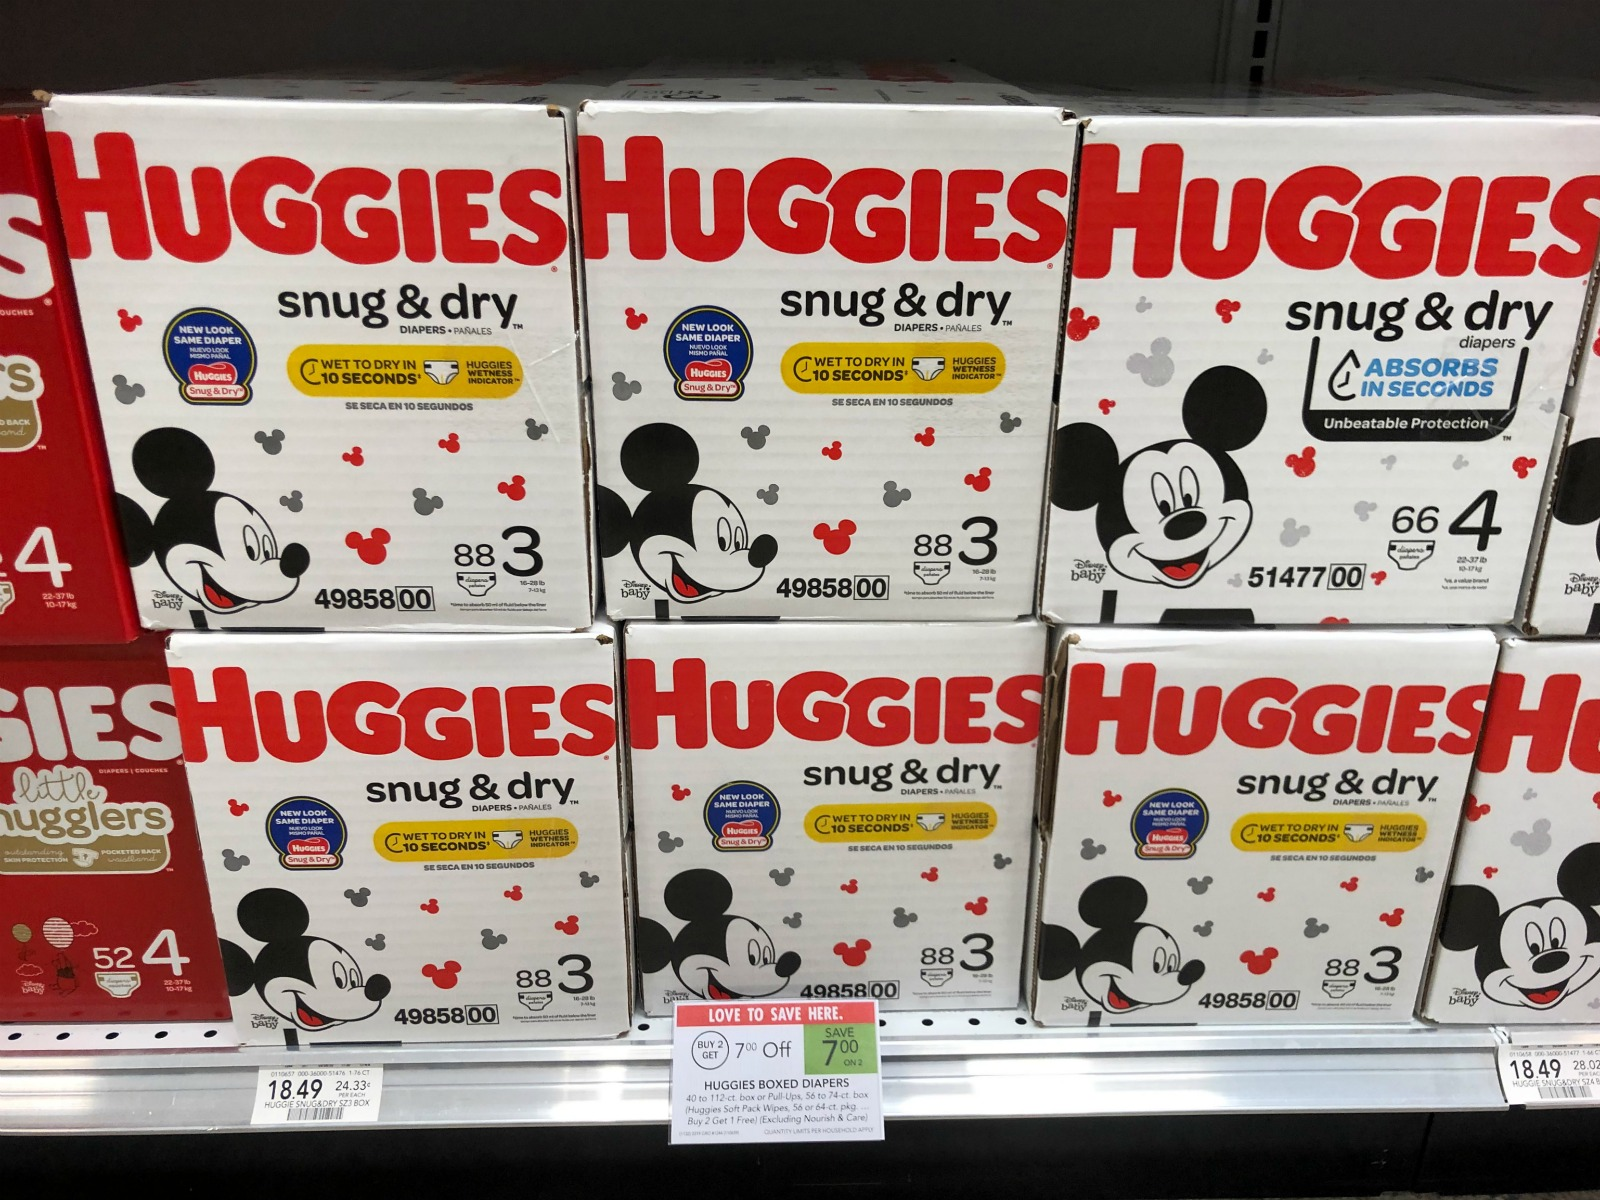 Huggies Boxed Diapers Just $10.49 At Publix (Save $8!!) on I Heart Publix 1